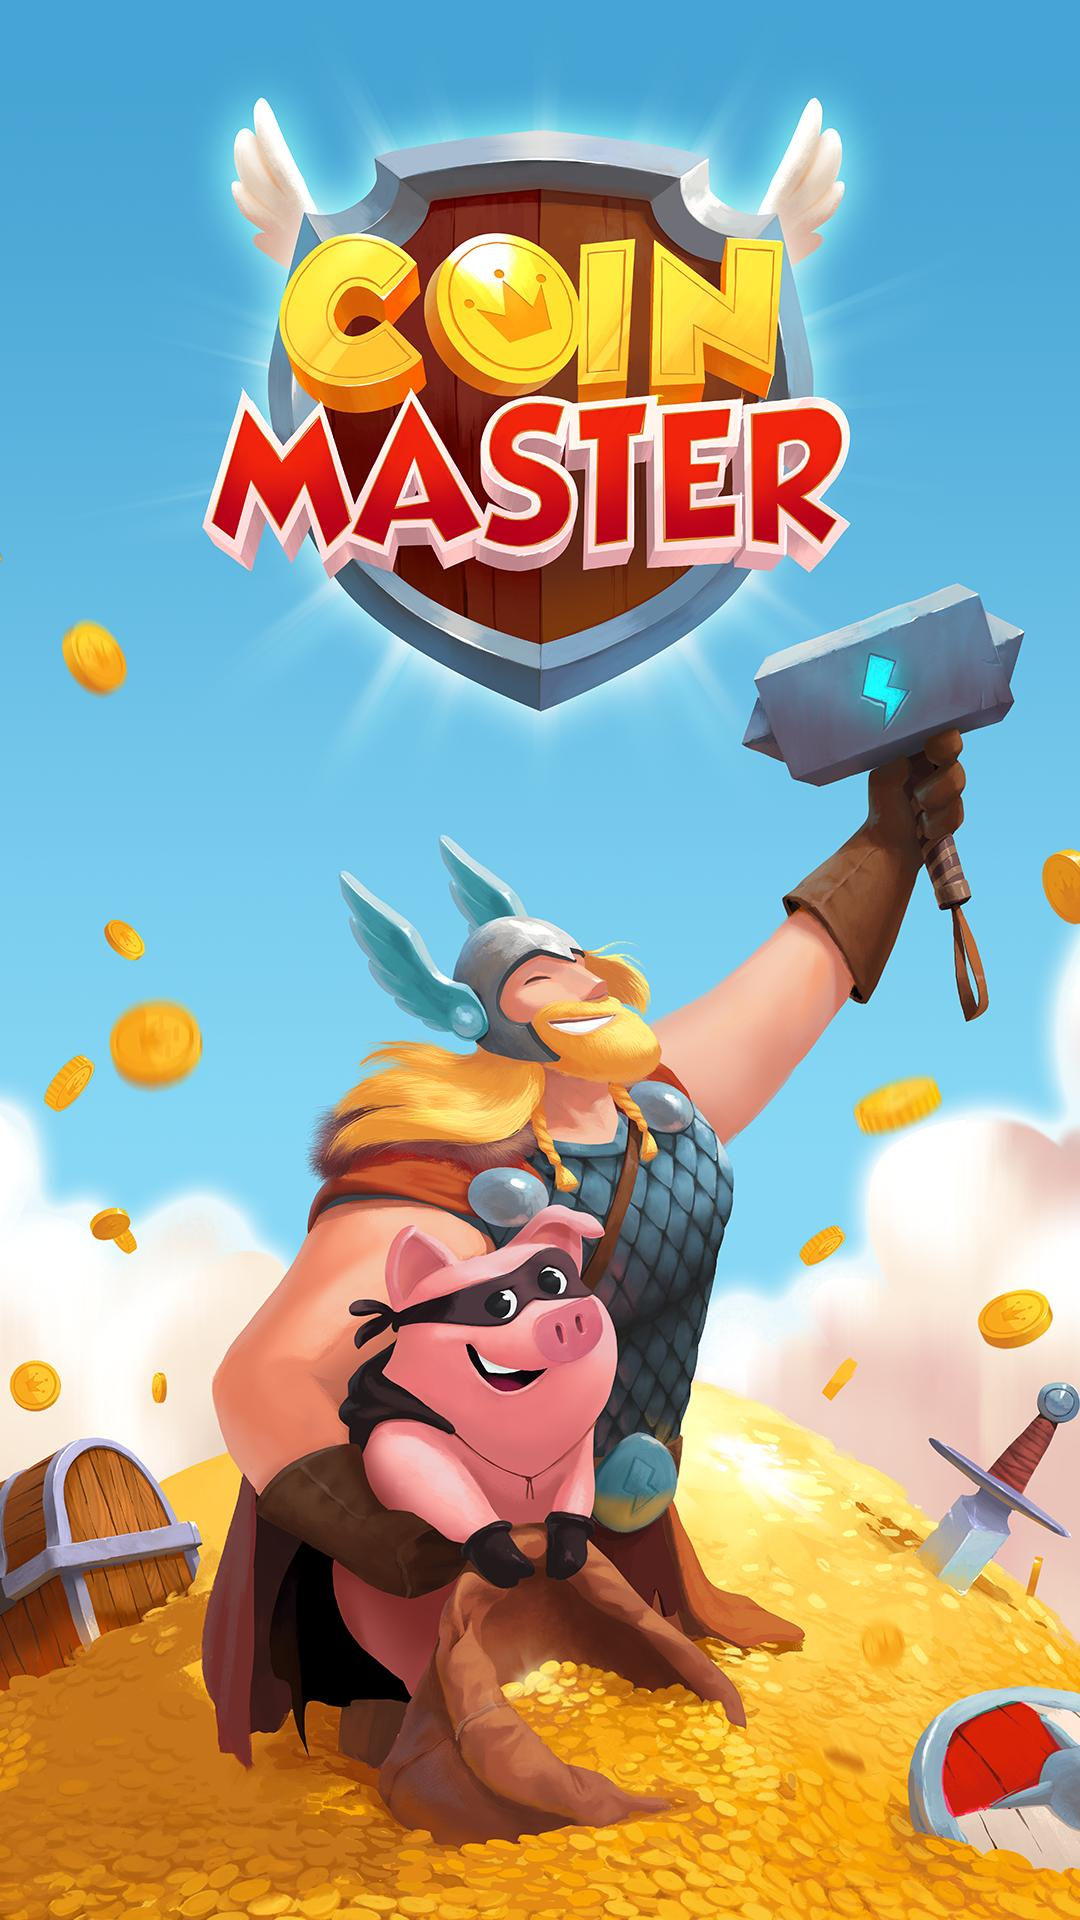 Link to get free spins on coin master